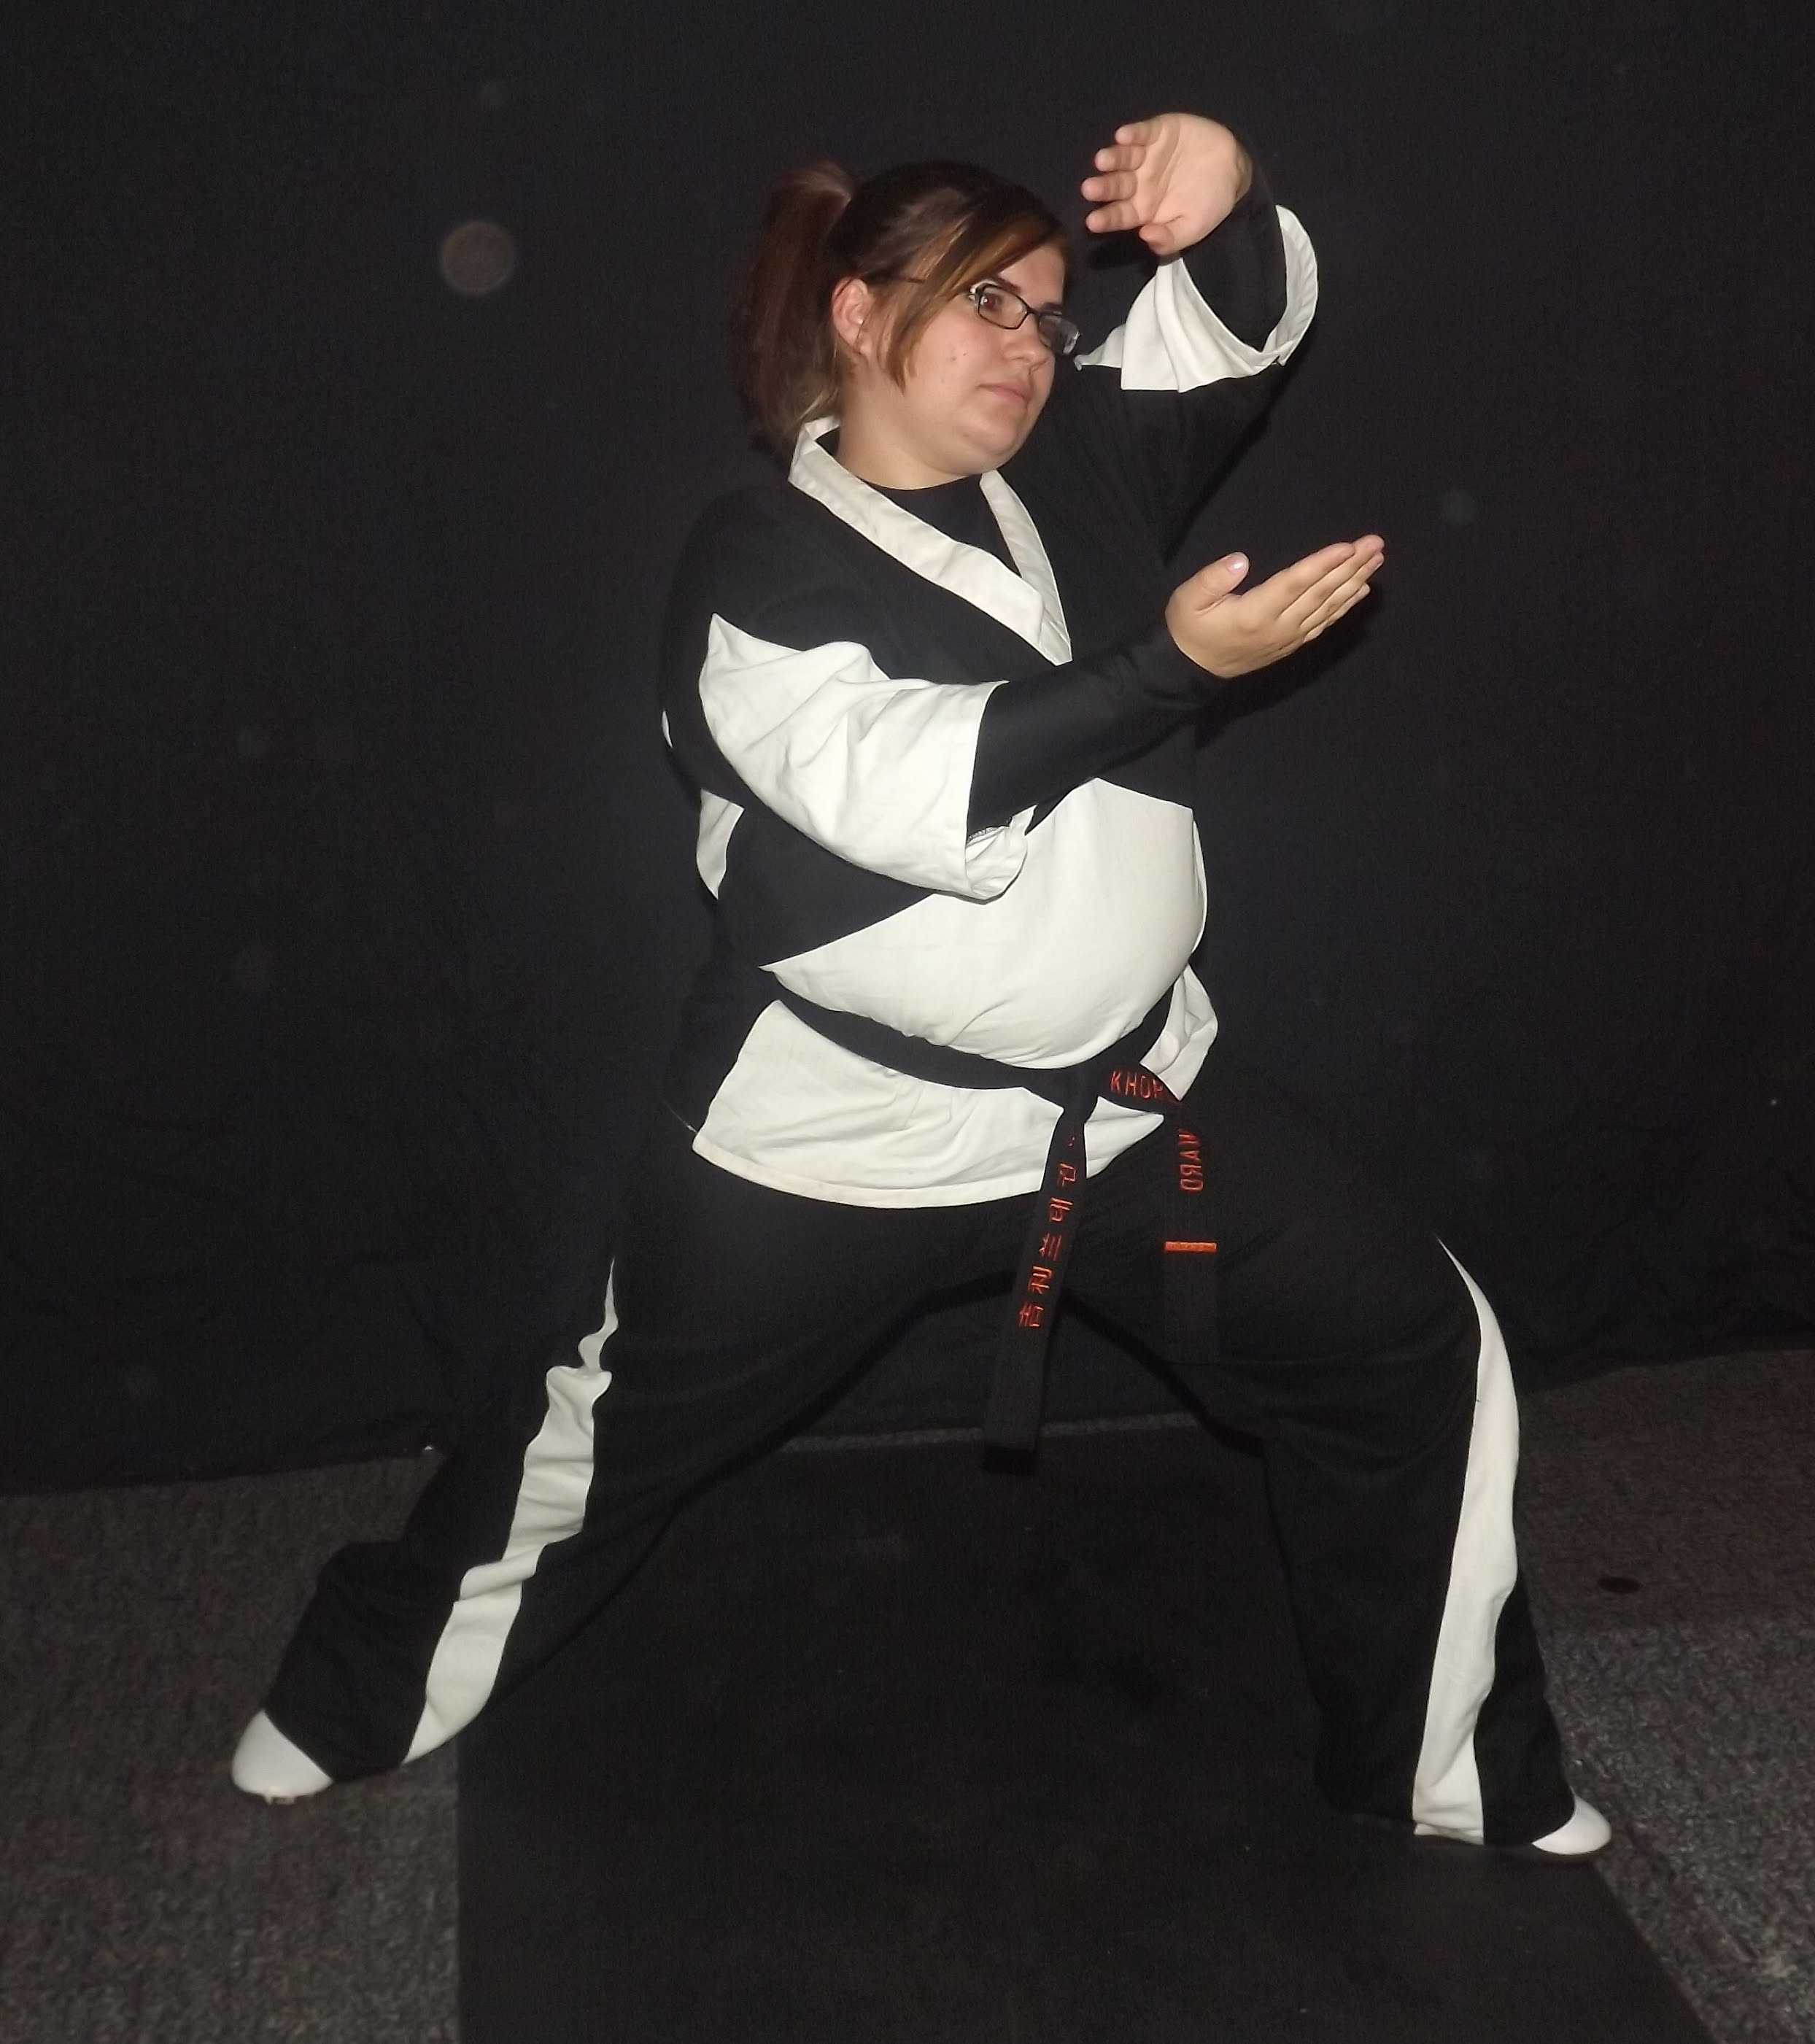 Arch Angel Demo Team - Gilliland's Tae Kwon Do Center